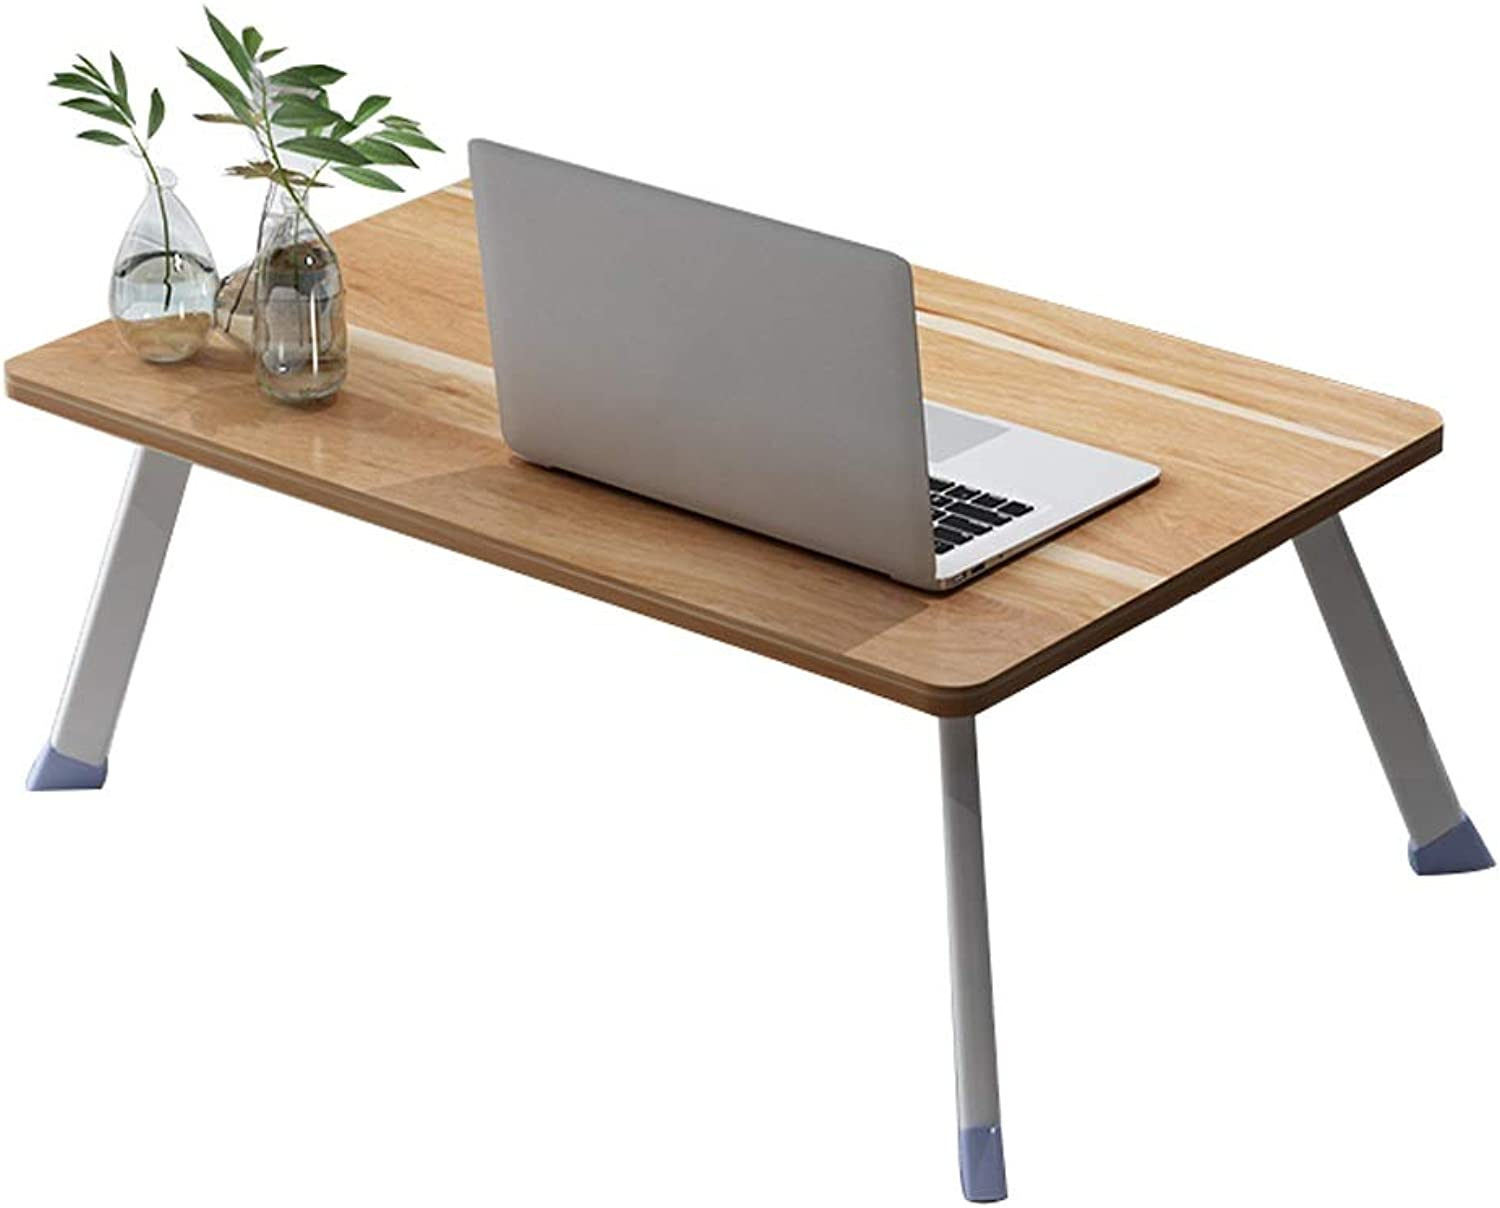 Simple Computer Desk Bed Desk Folding Dormitory Home Multi-Function Lazy Table Student Table (Three colors Optional) 70x50cm (color   Bamboo Wood)